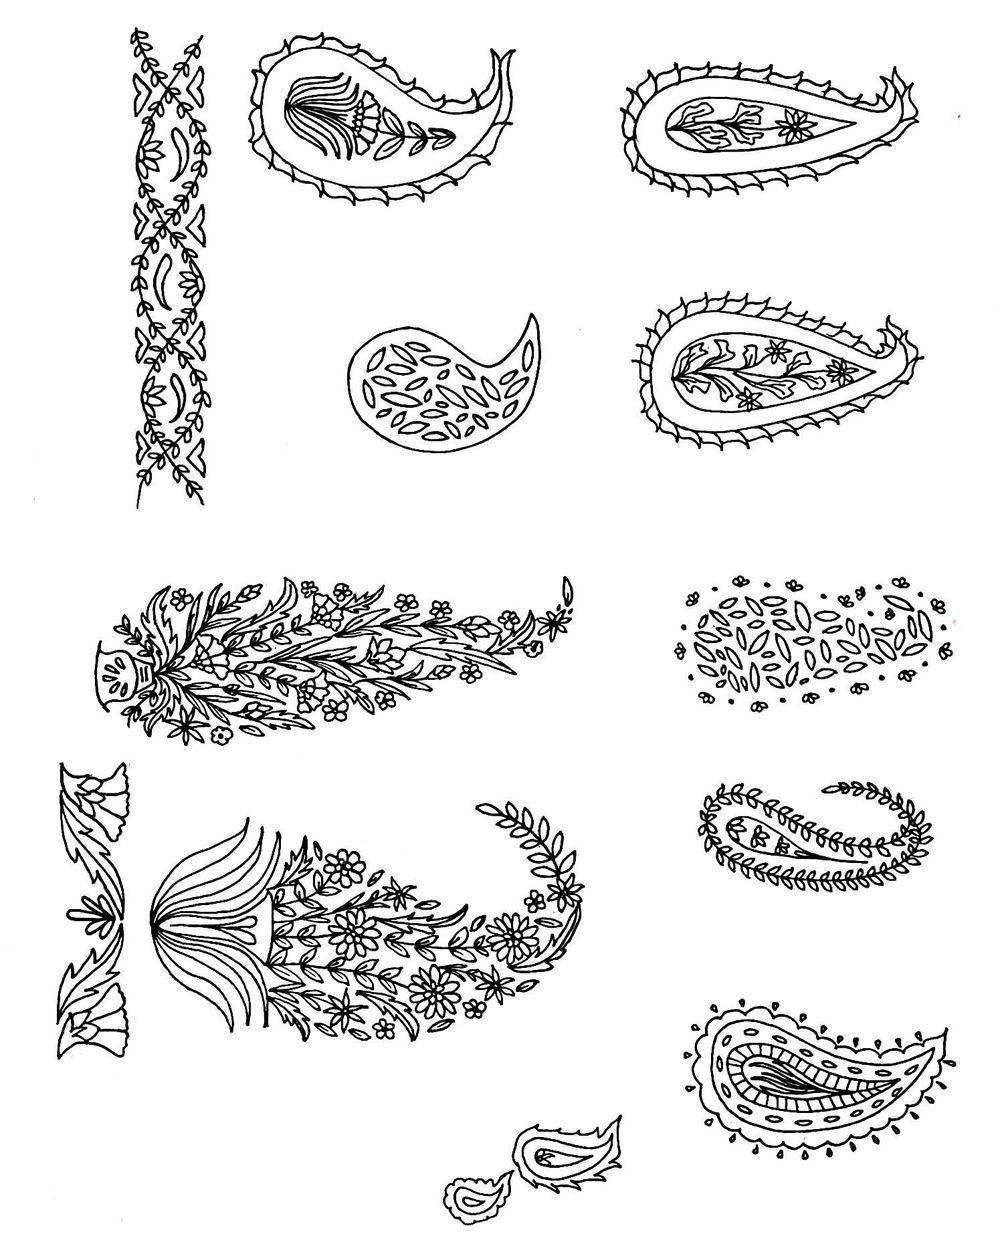 Paisley prints - image 1 - student project